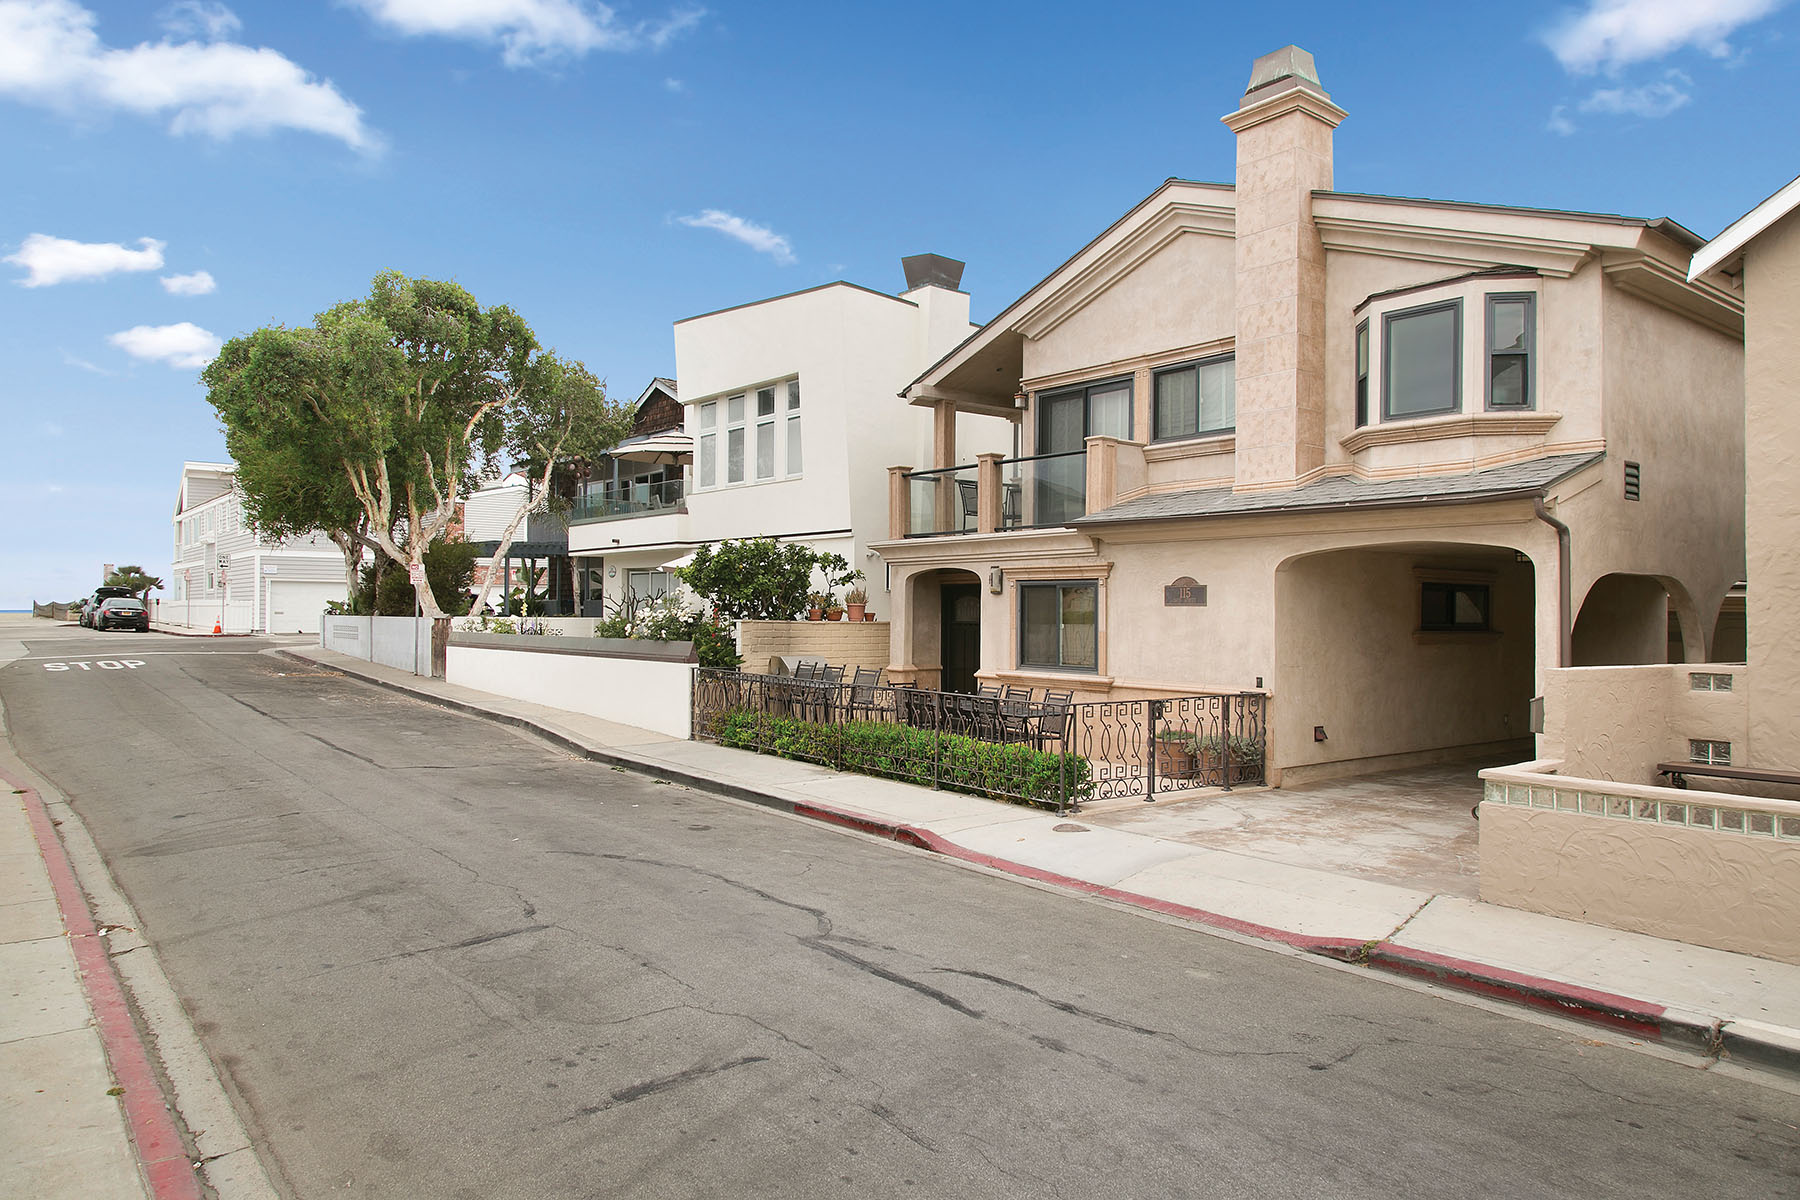 Single Family Home for Sale at 115 39th Street Newport Beach, California 92663 United States